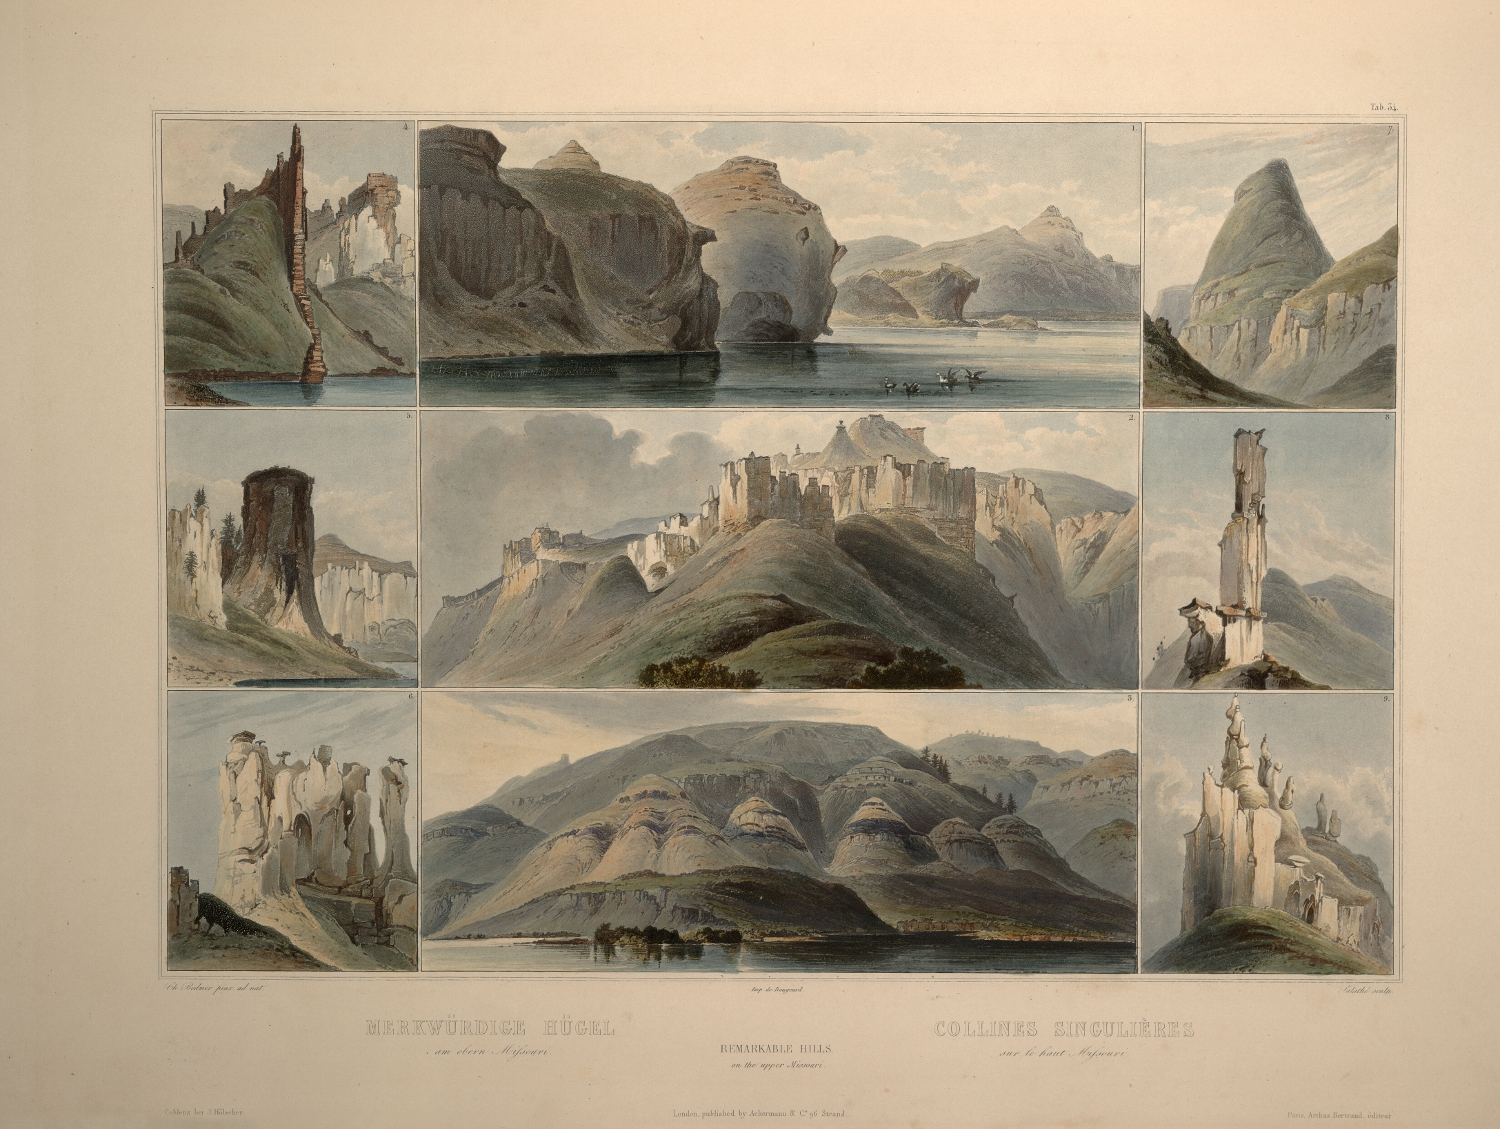 Karl Bodmer. Remarkable Hills on the Upper Missouri. From the Old Book Art Gallery.